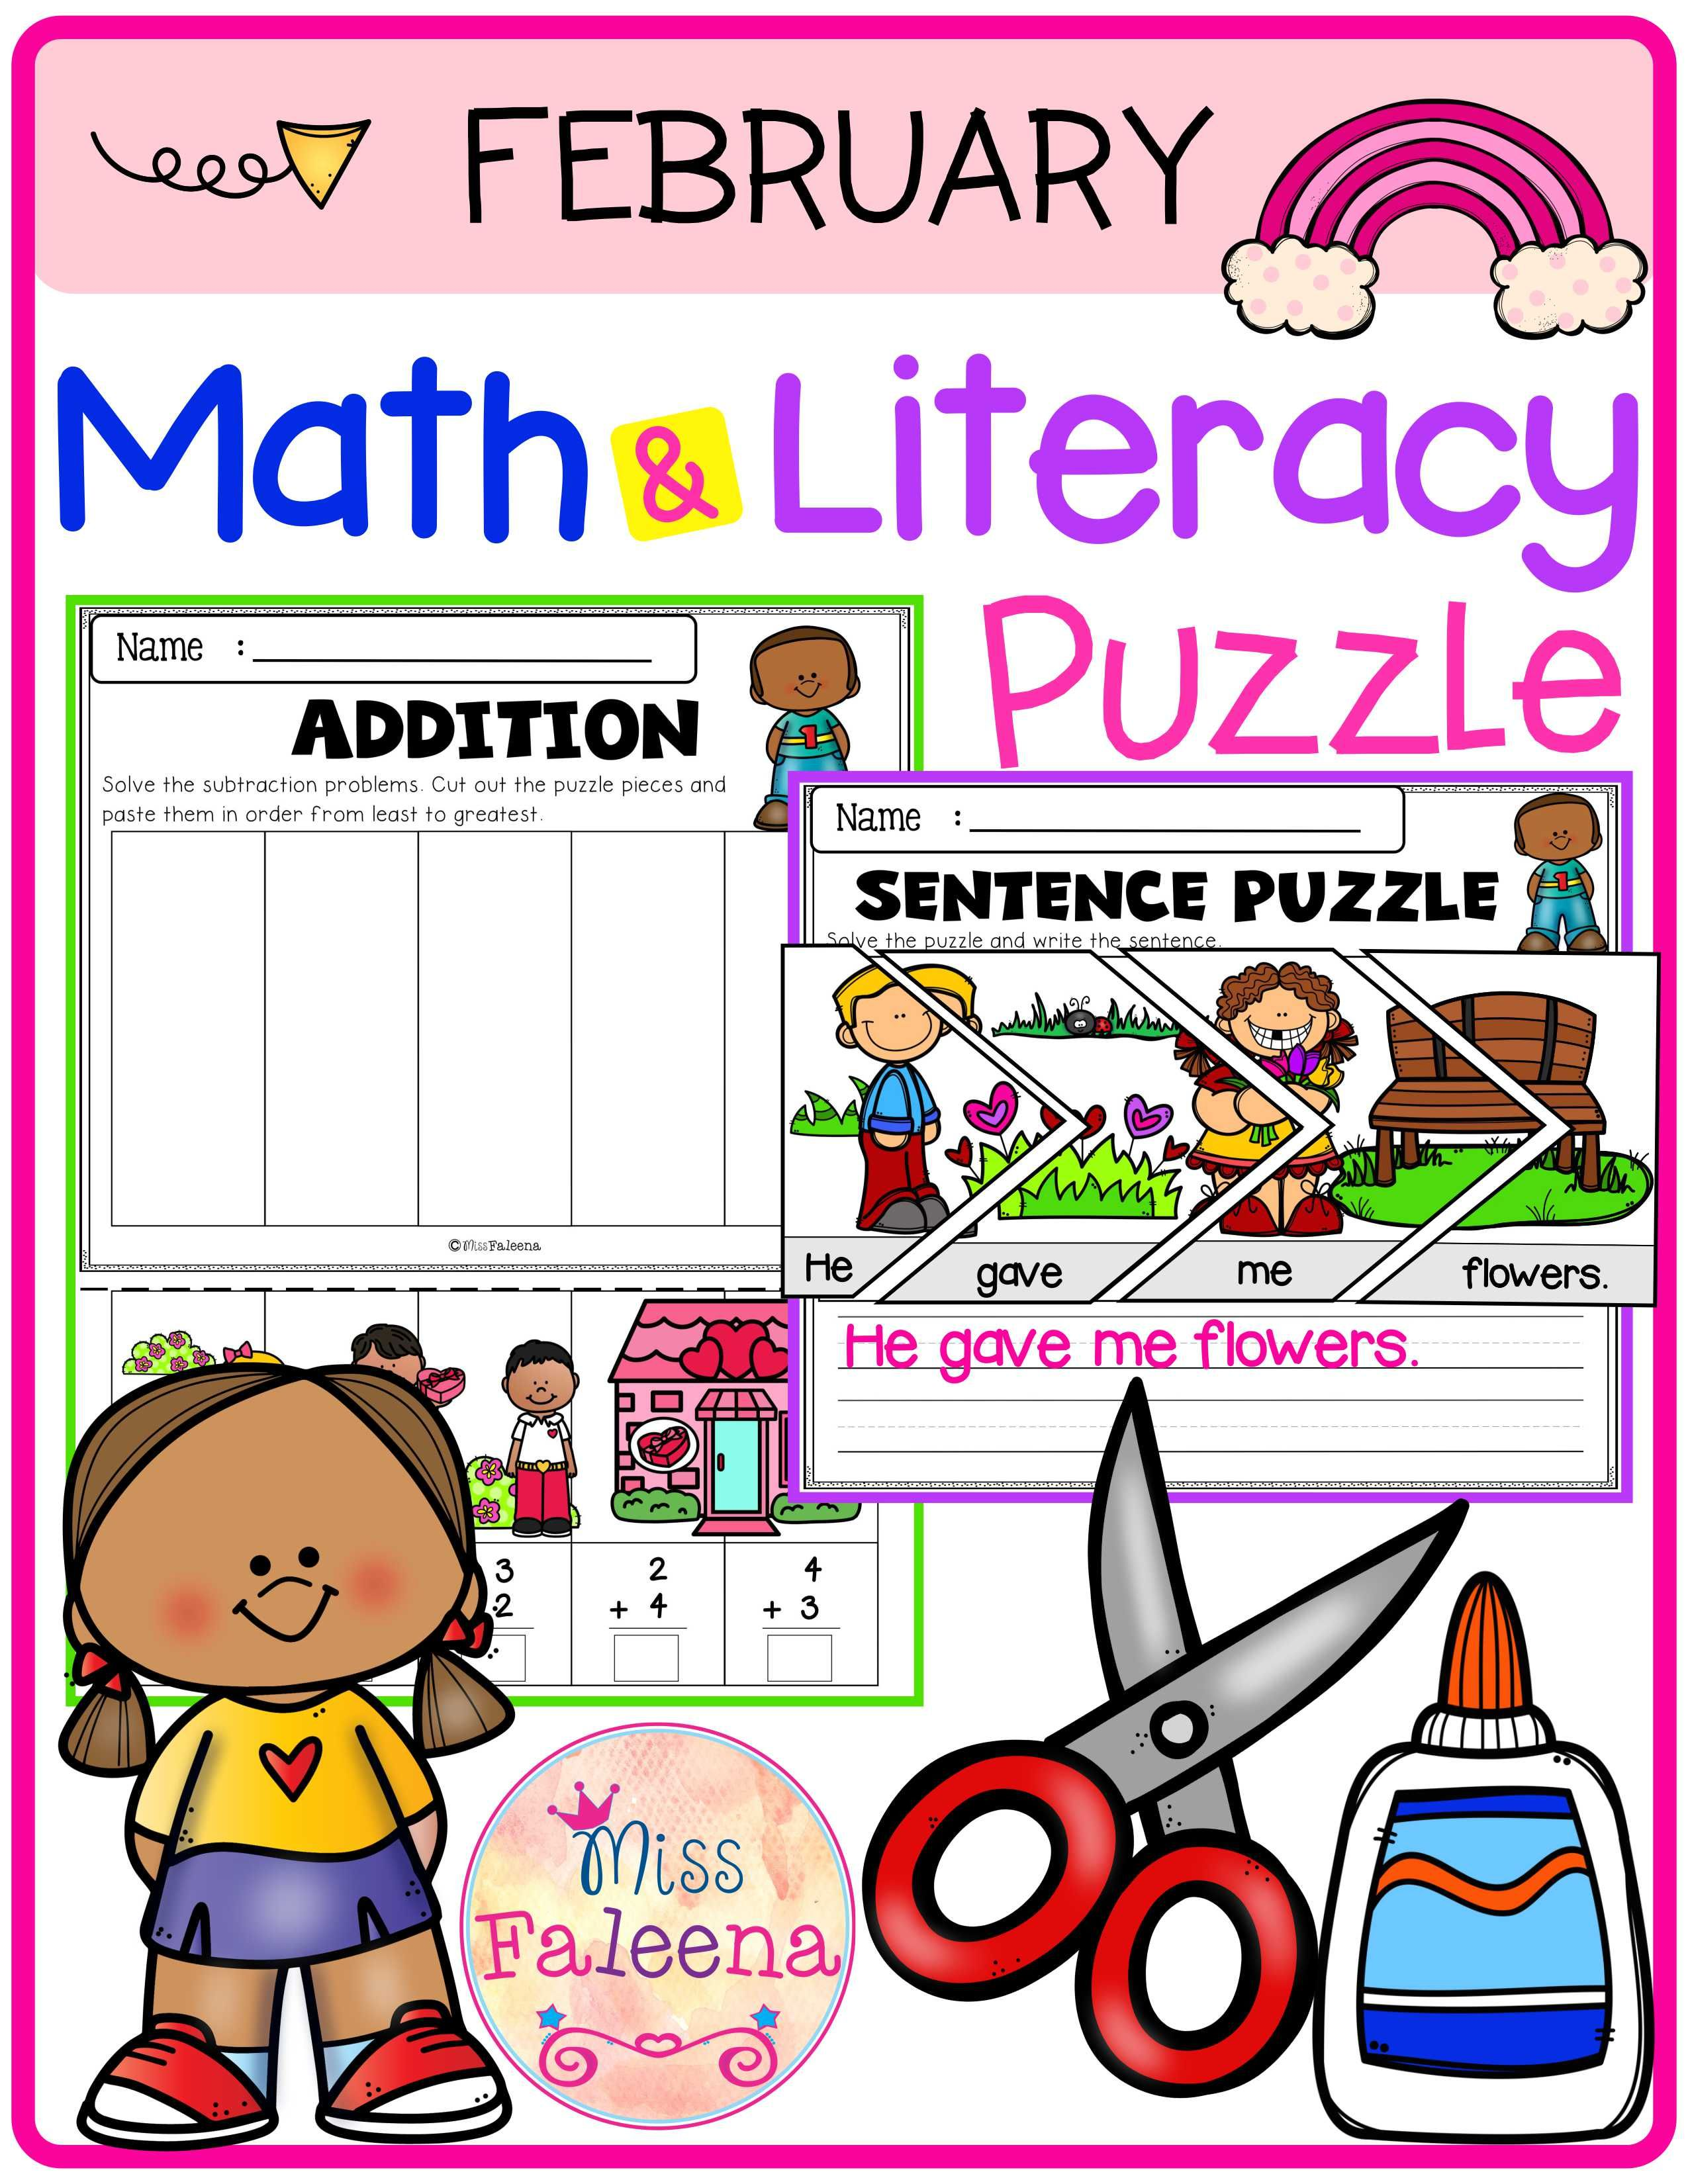 February Math And Literacy Puzzles